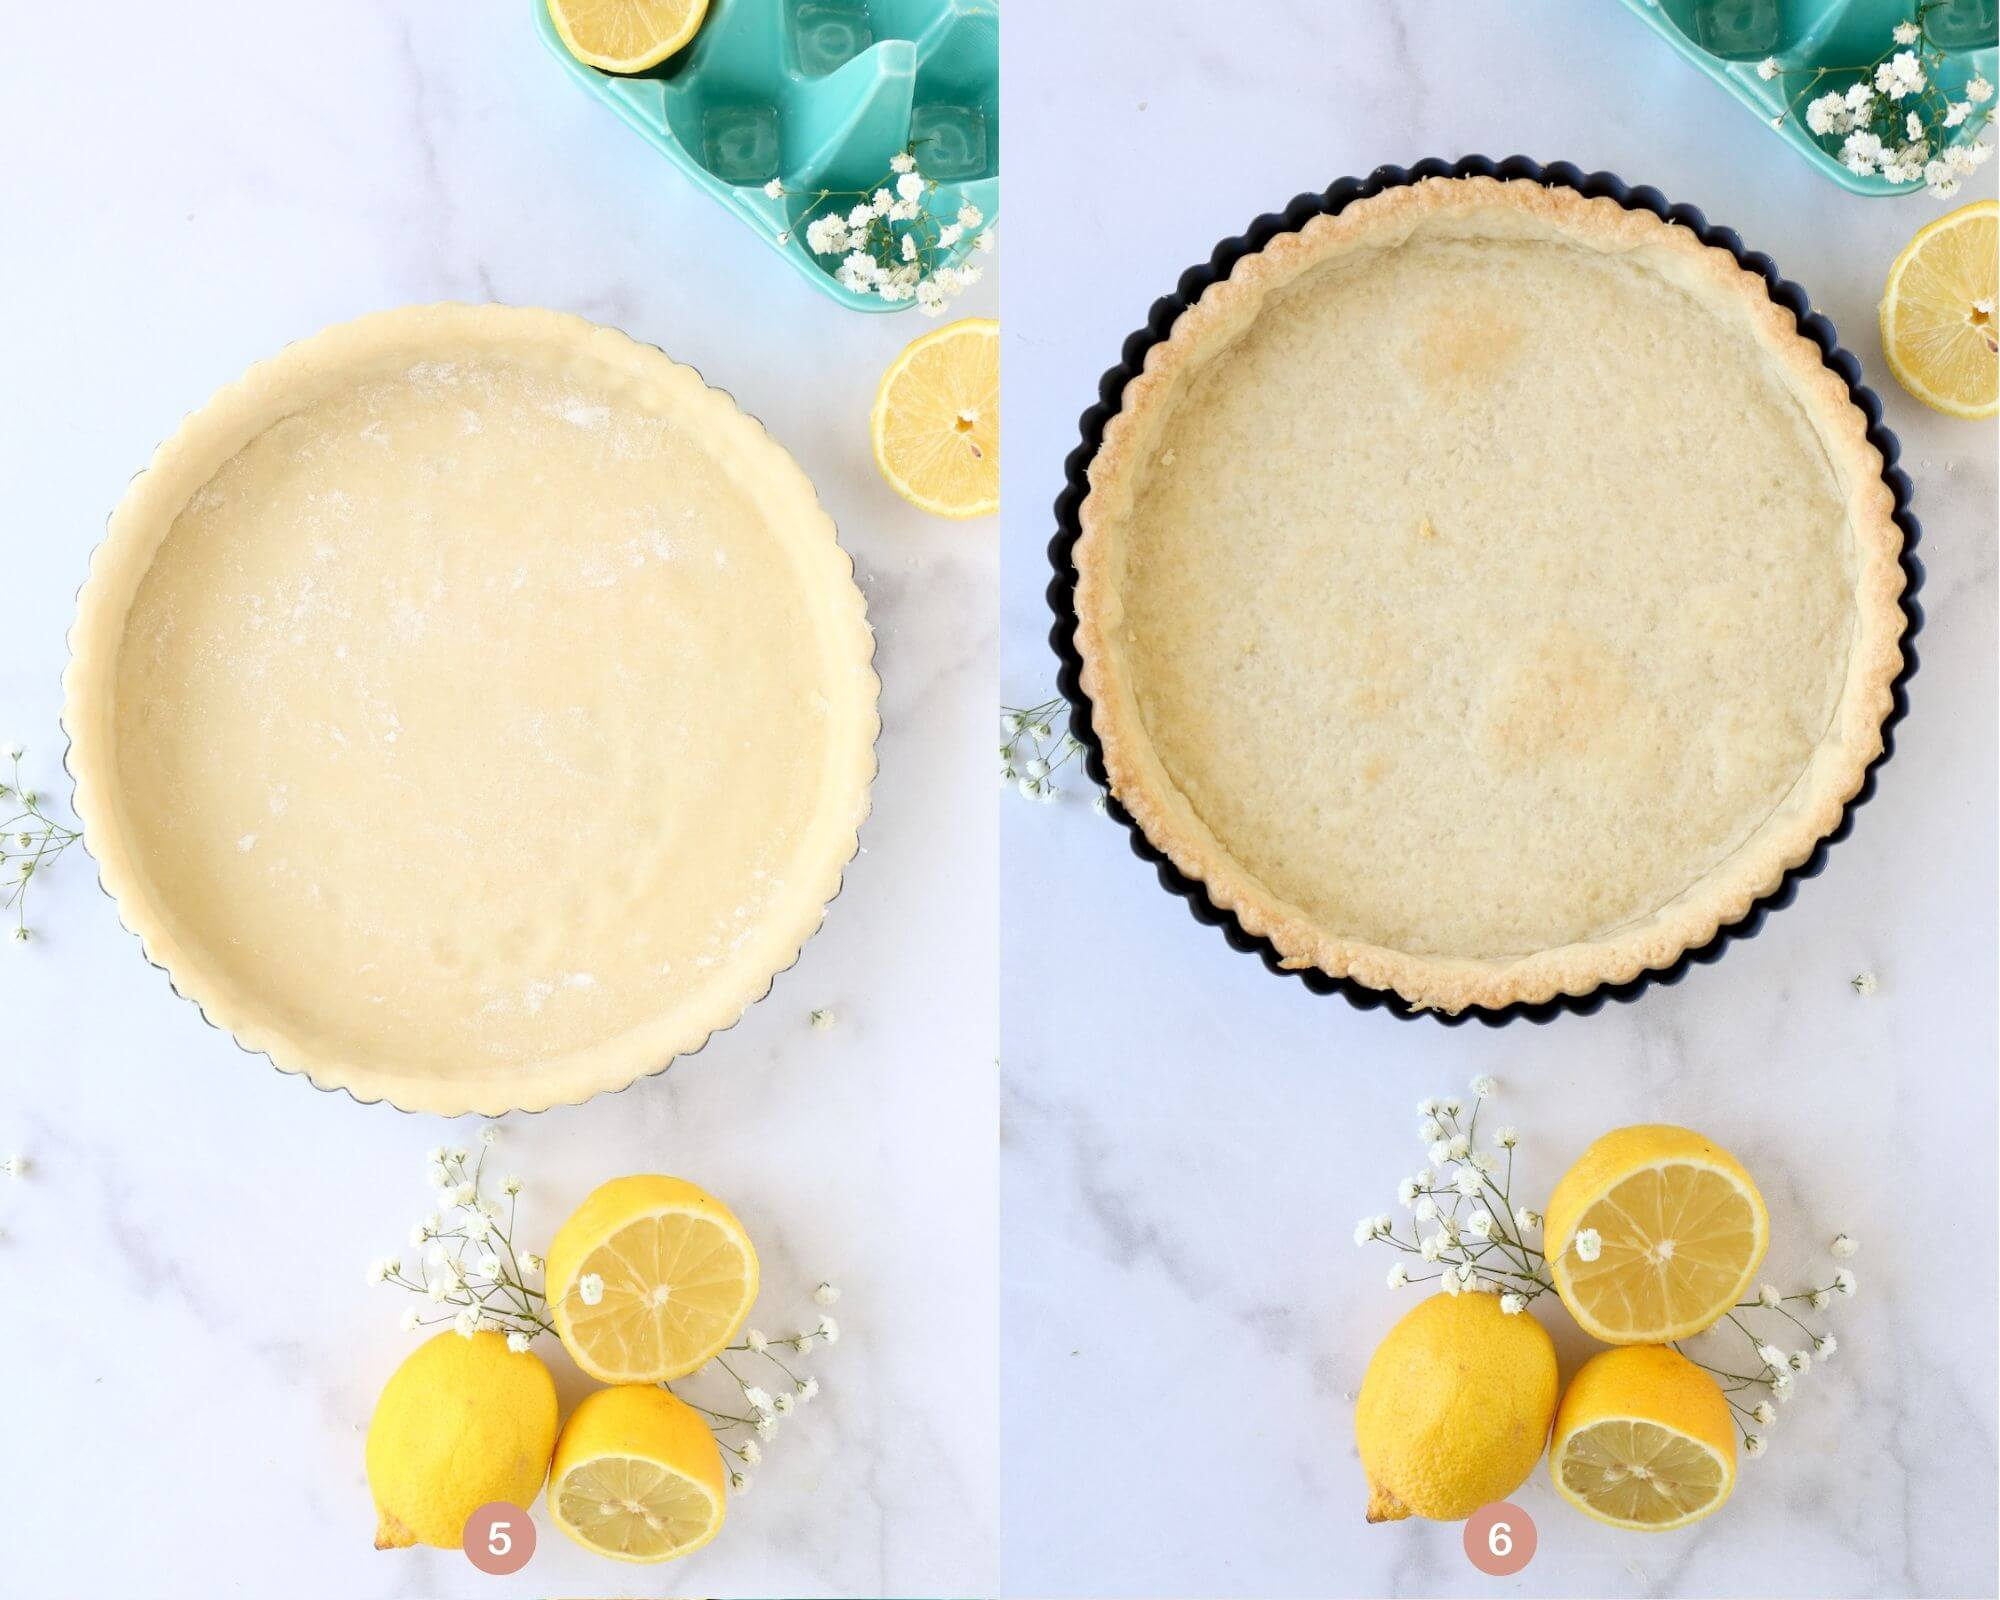 a tart shell with raw dough next to a tart shell with baked dough.